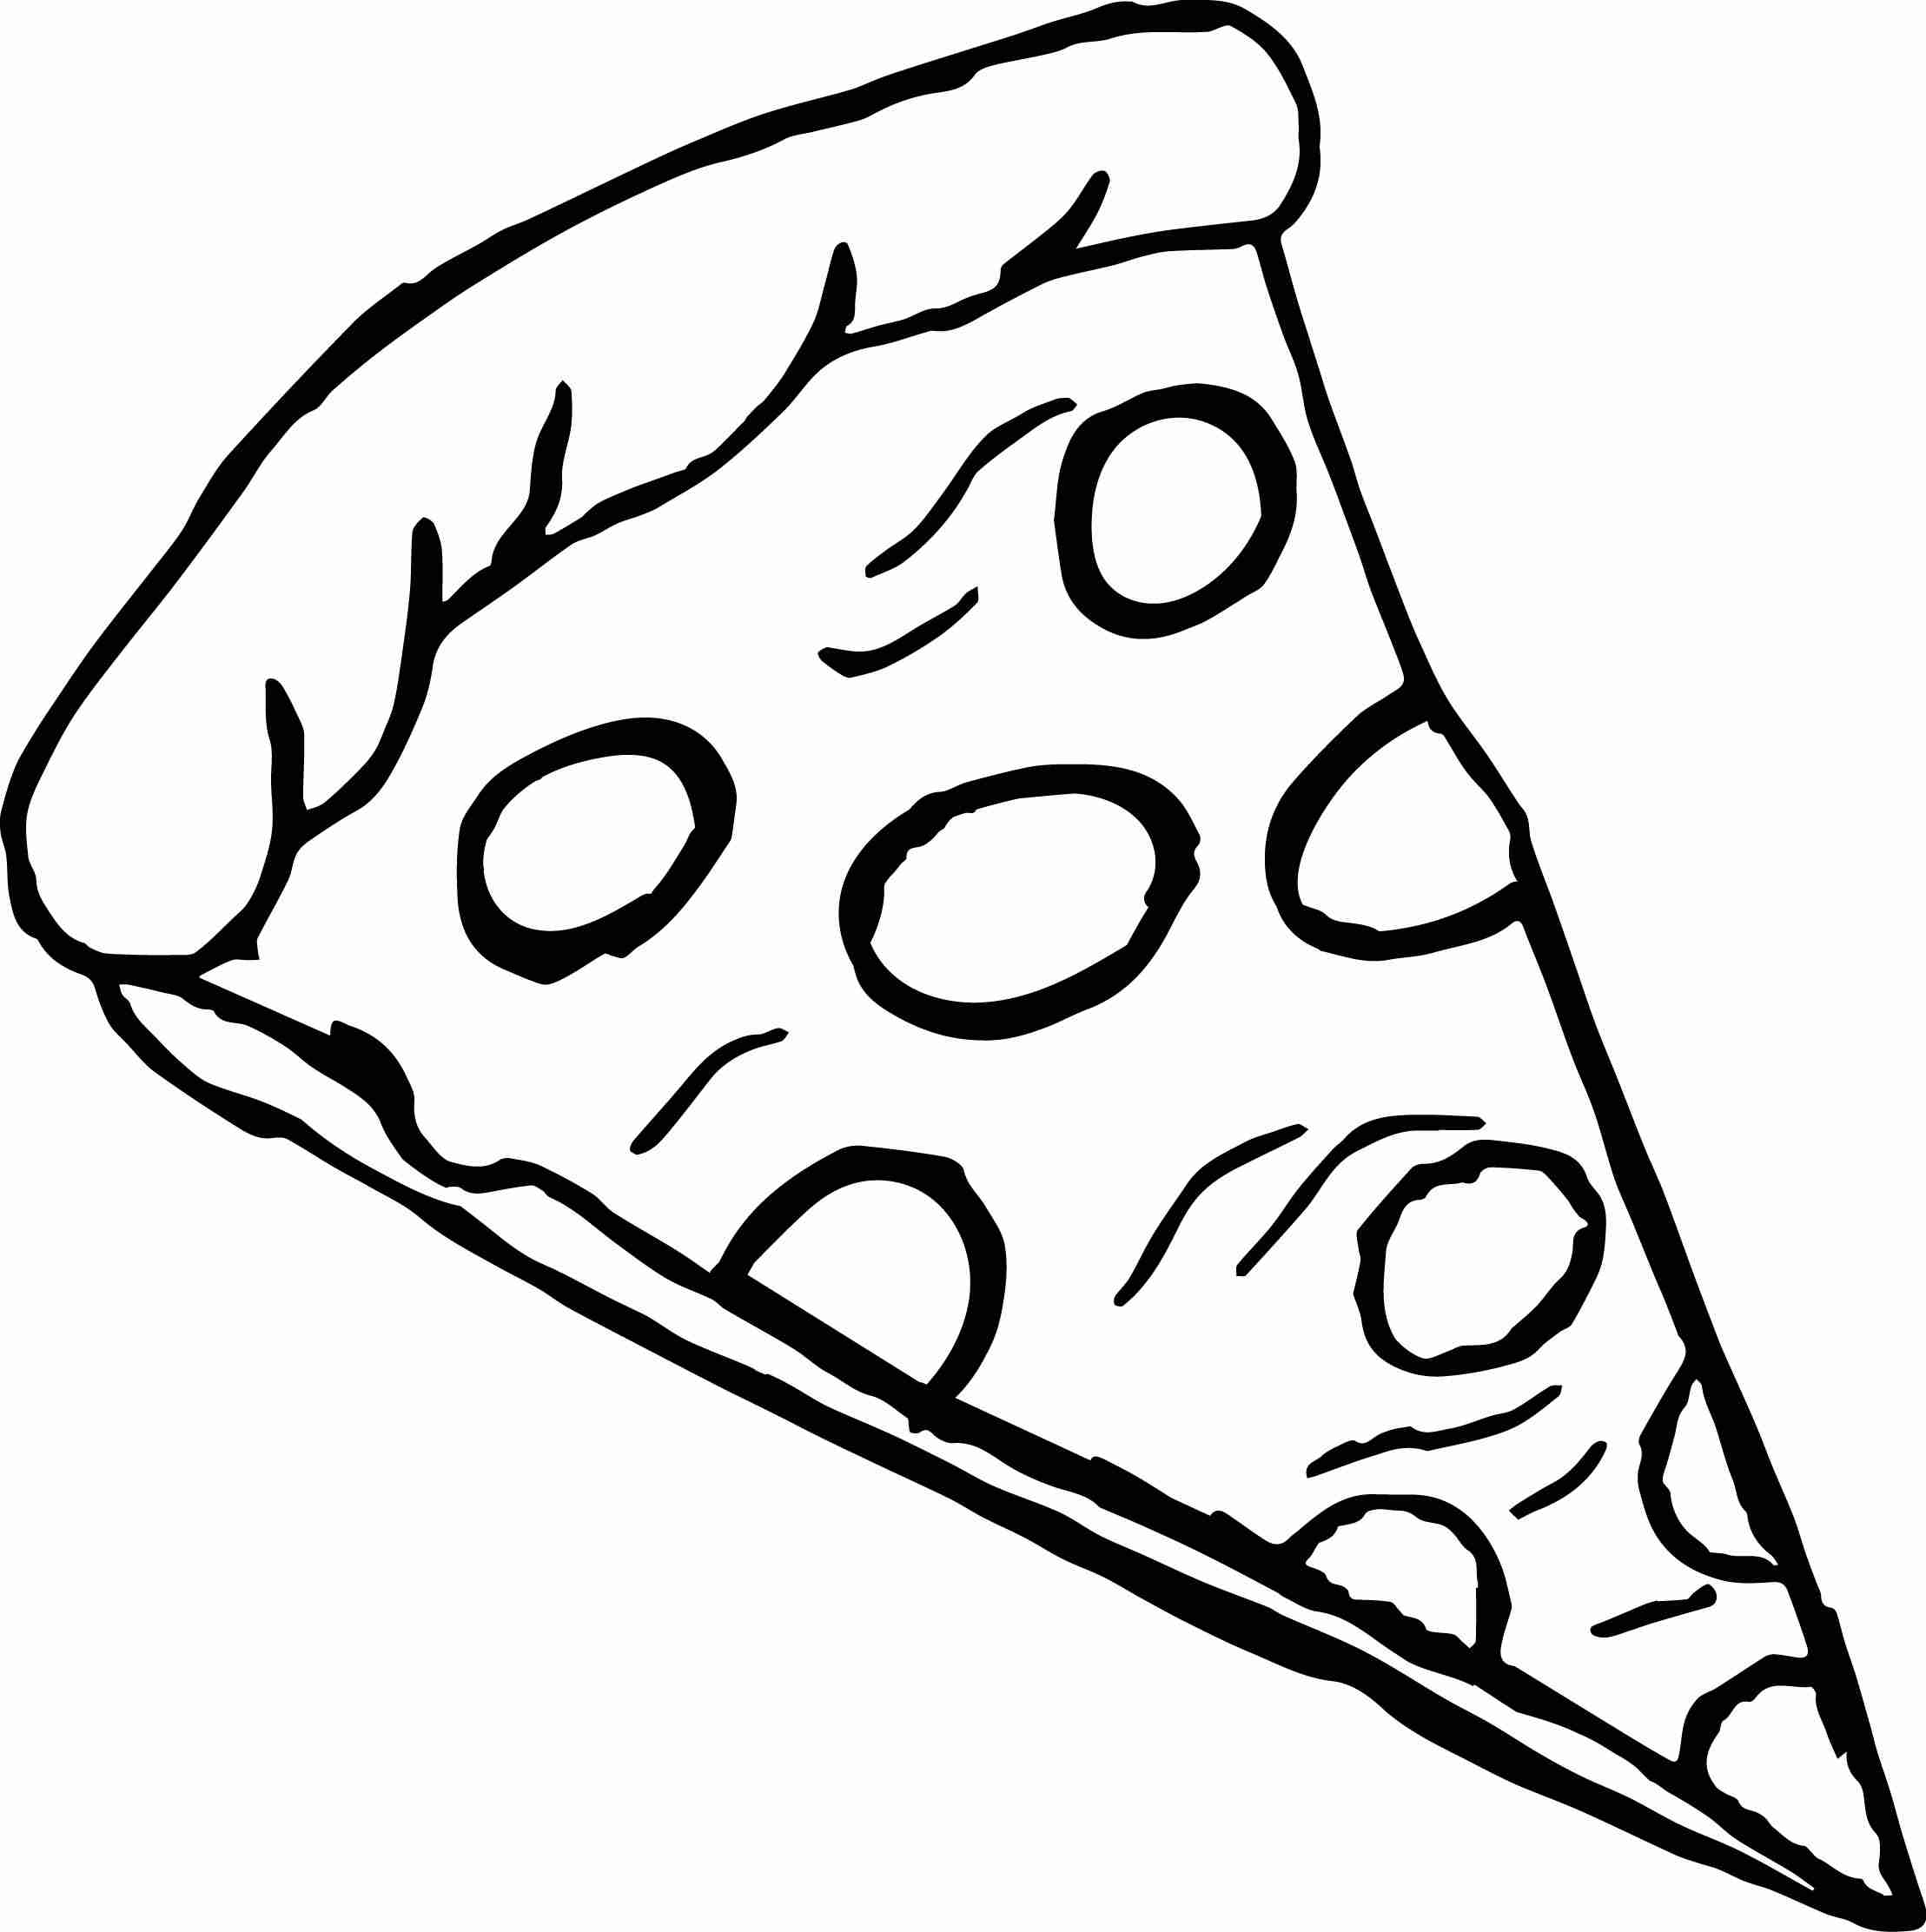 2217x2224 Revealing Pizza Hut Coloring Pages Pepperoni P